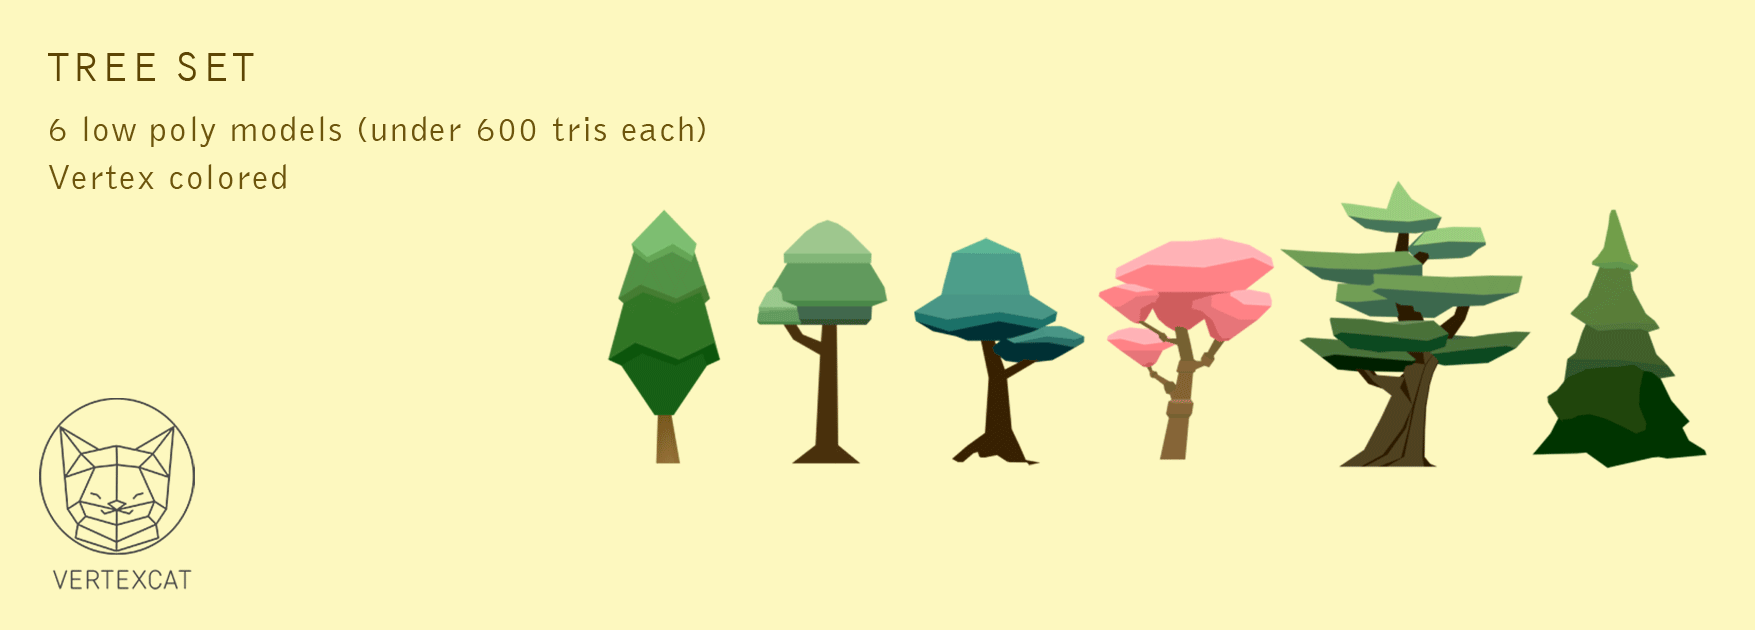 Vertex color trees set